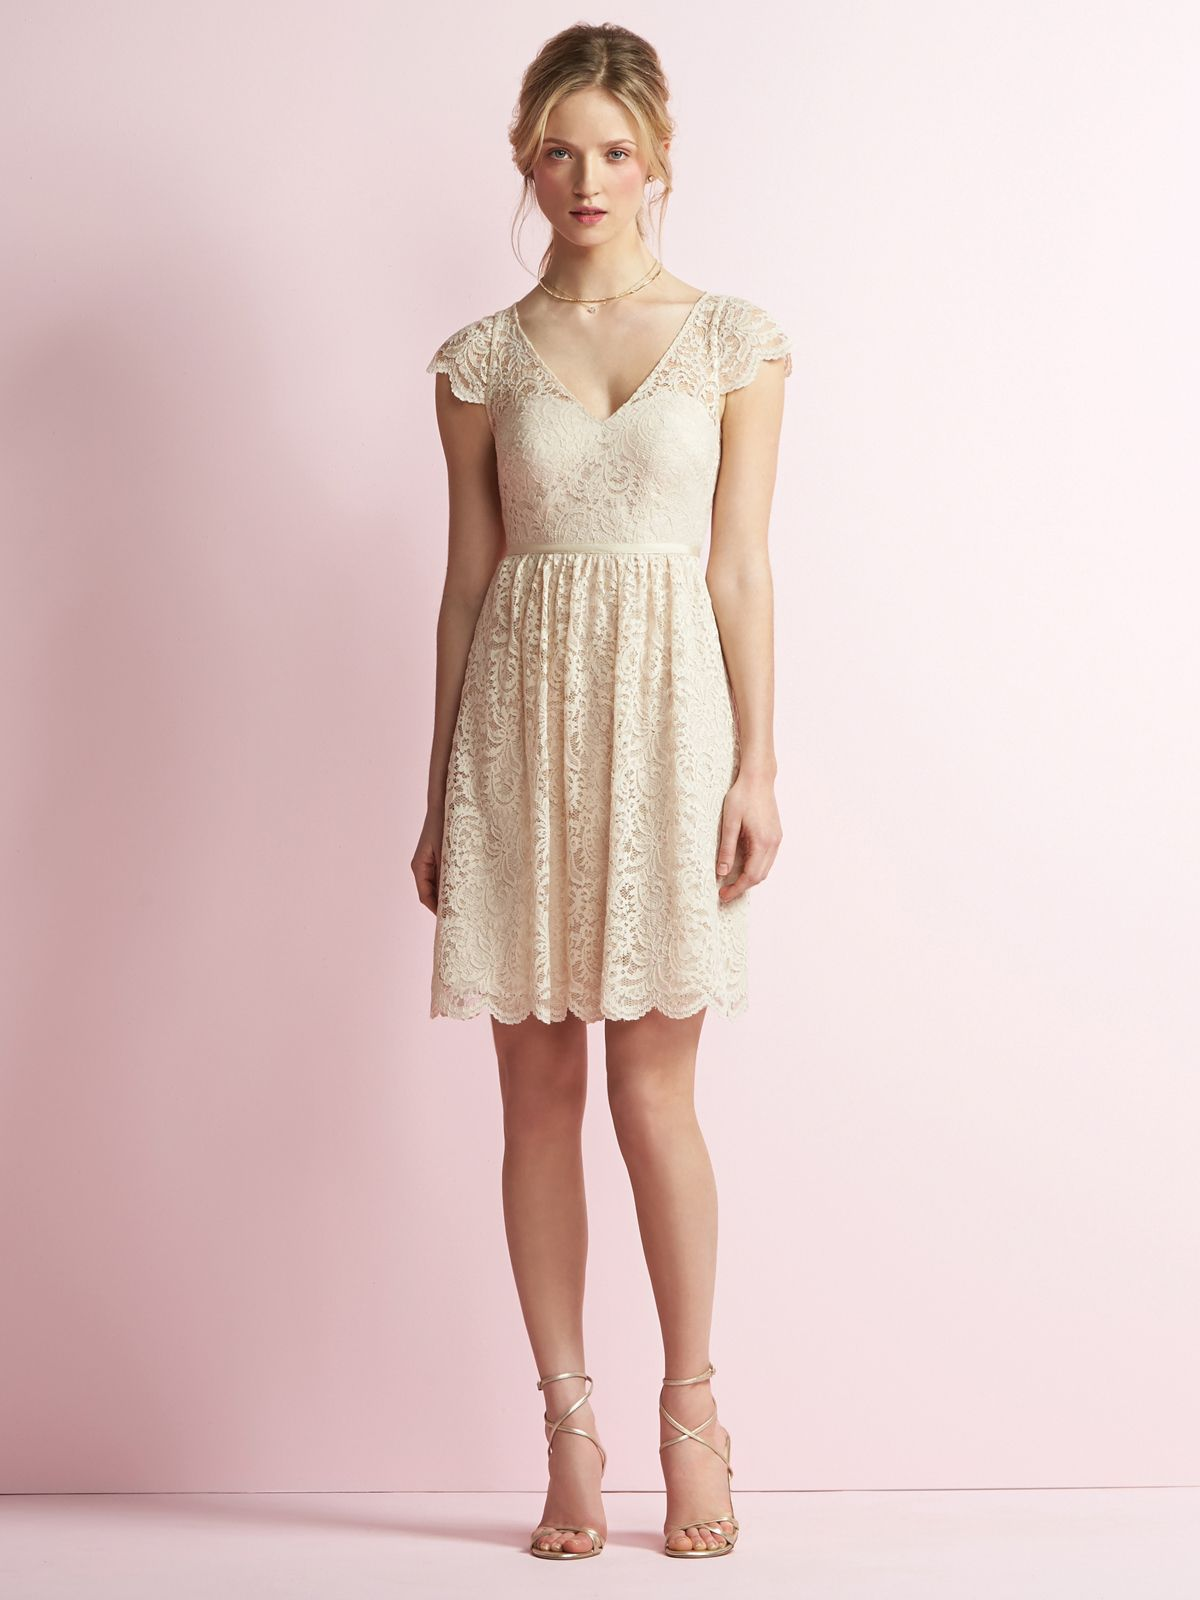 Tween Dresses For Weddings Country Check More At Http